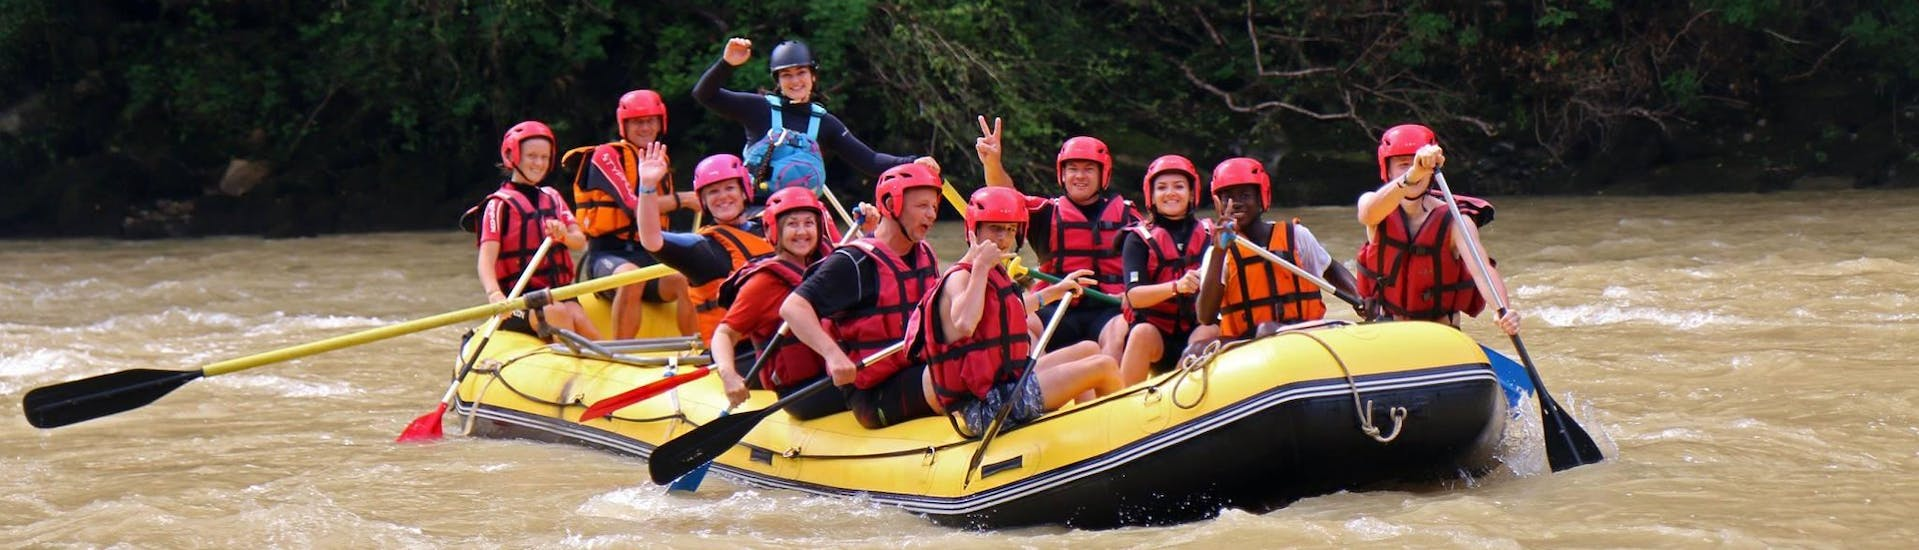 """Rafting """"Adventure Day"""" - Gave d'Oloron"""